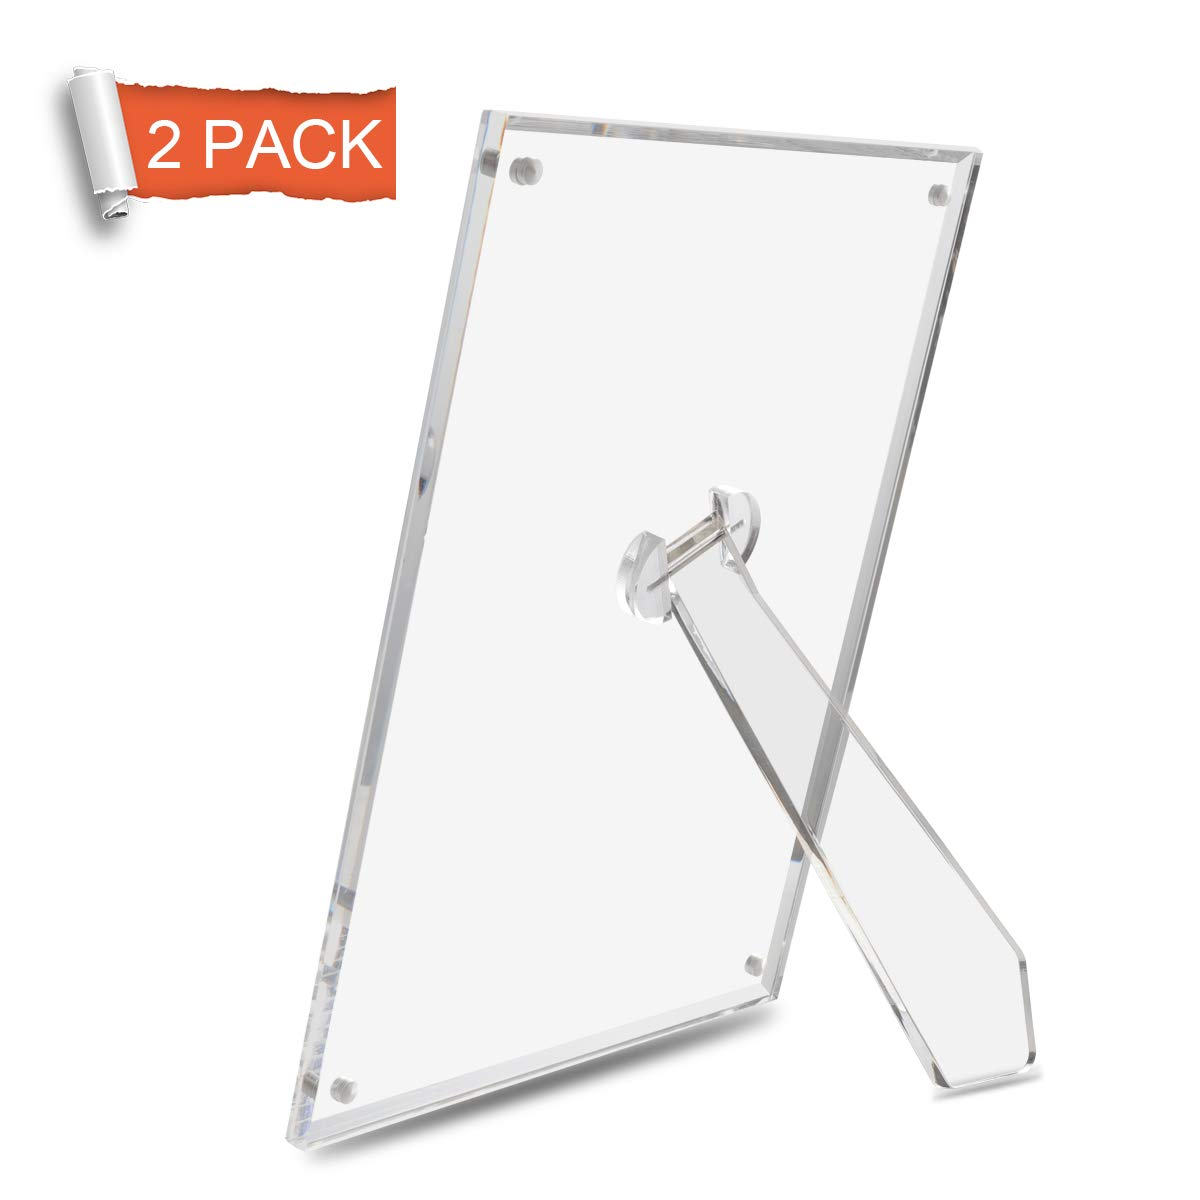 NIUBEE 4x6 Picture Frame, Acrylic Clear Photo Frame with Magnets for Tabletop Display, 2 Pack